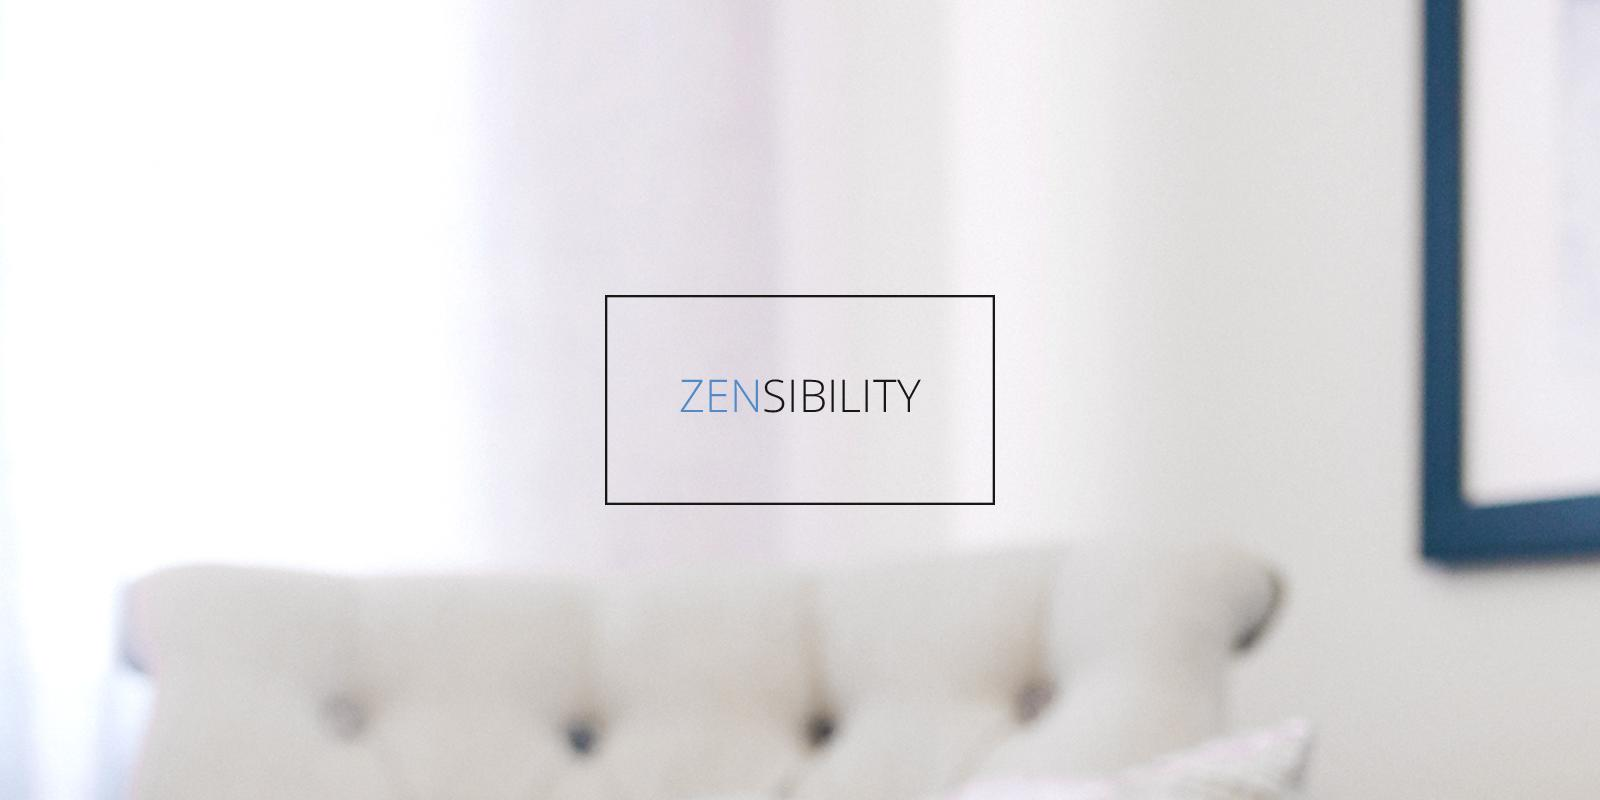 Zensibility Logo in front of a chair and wall